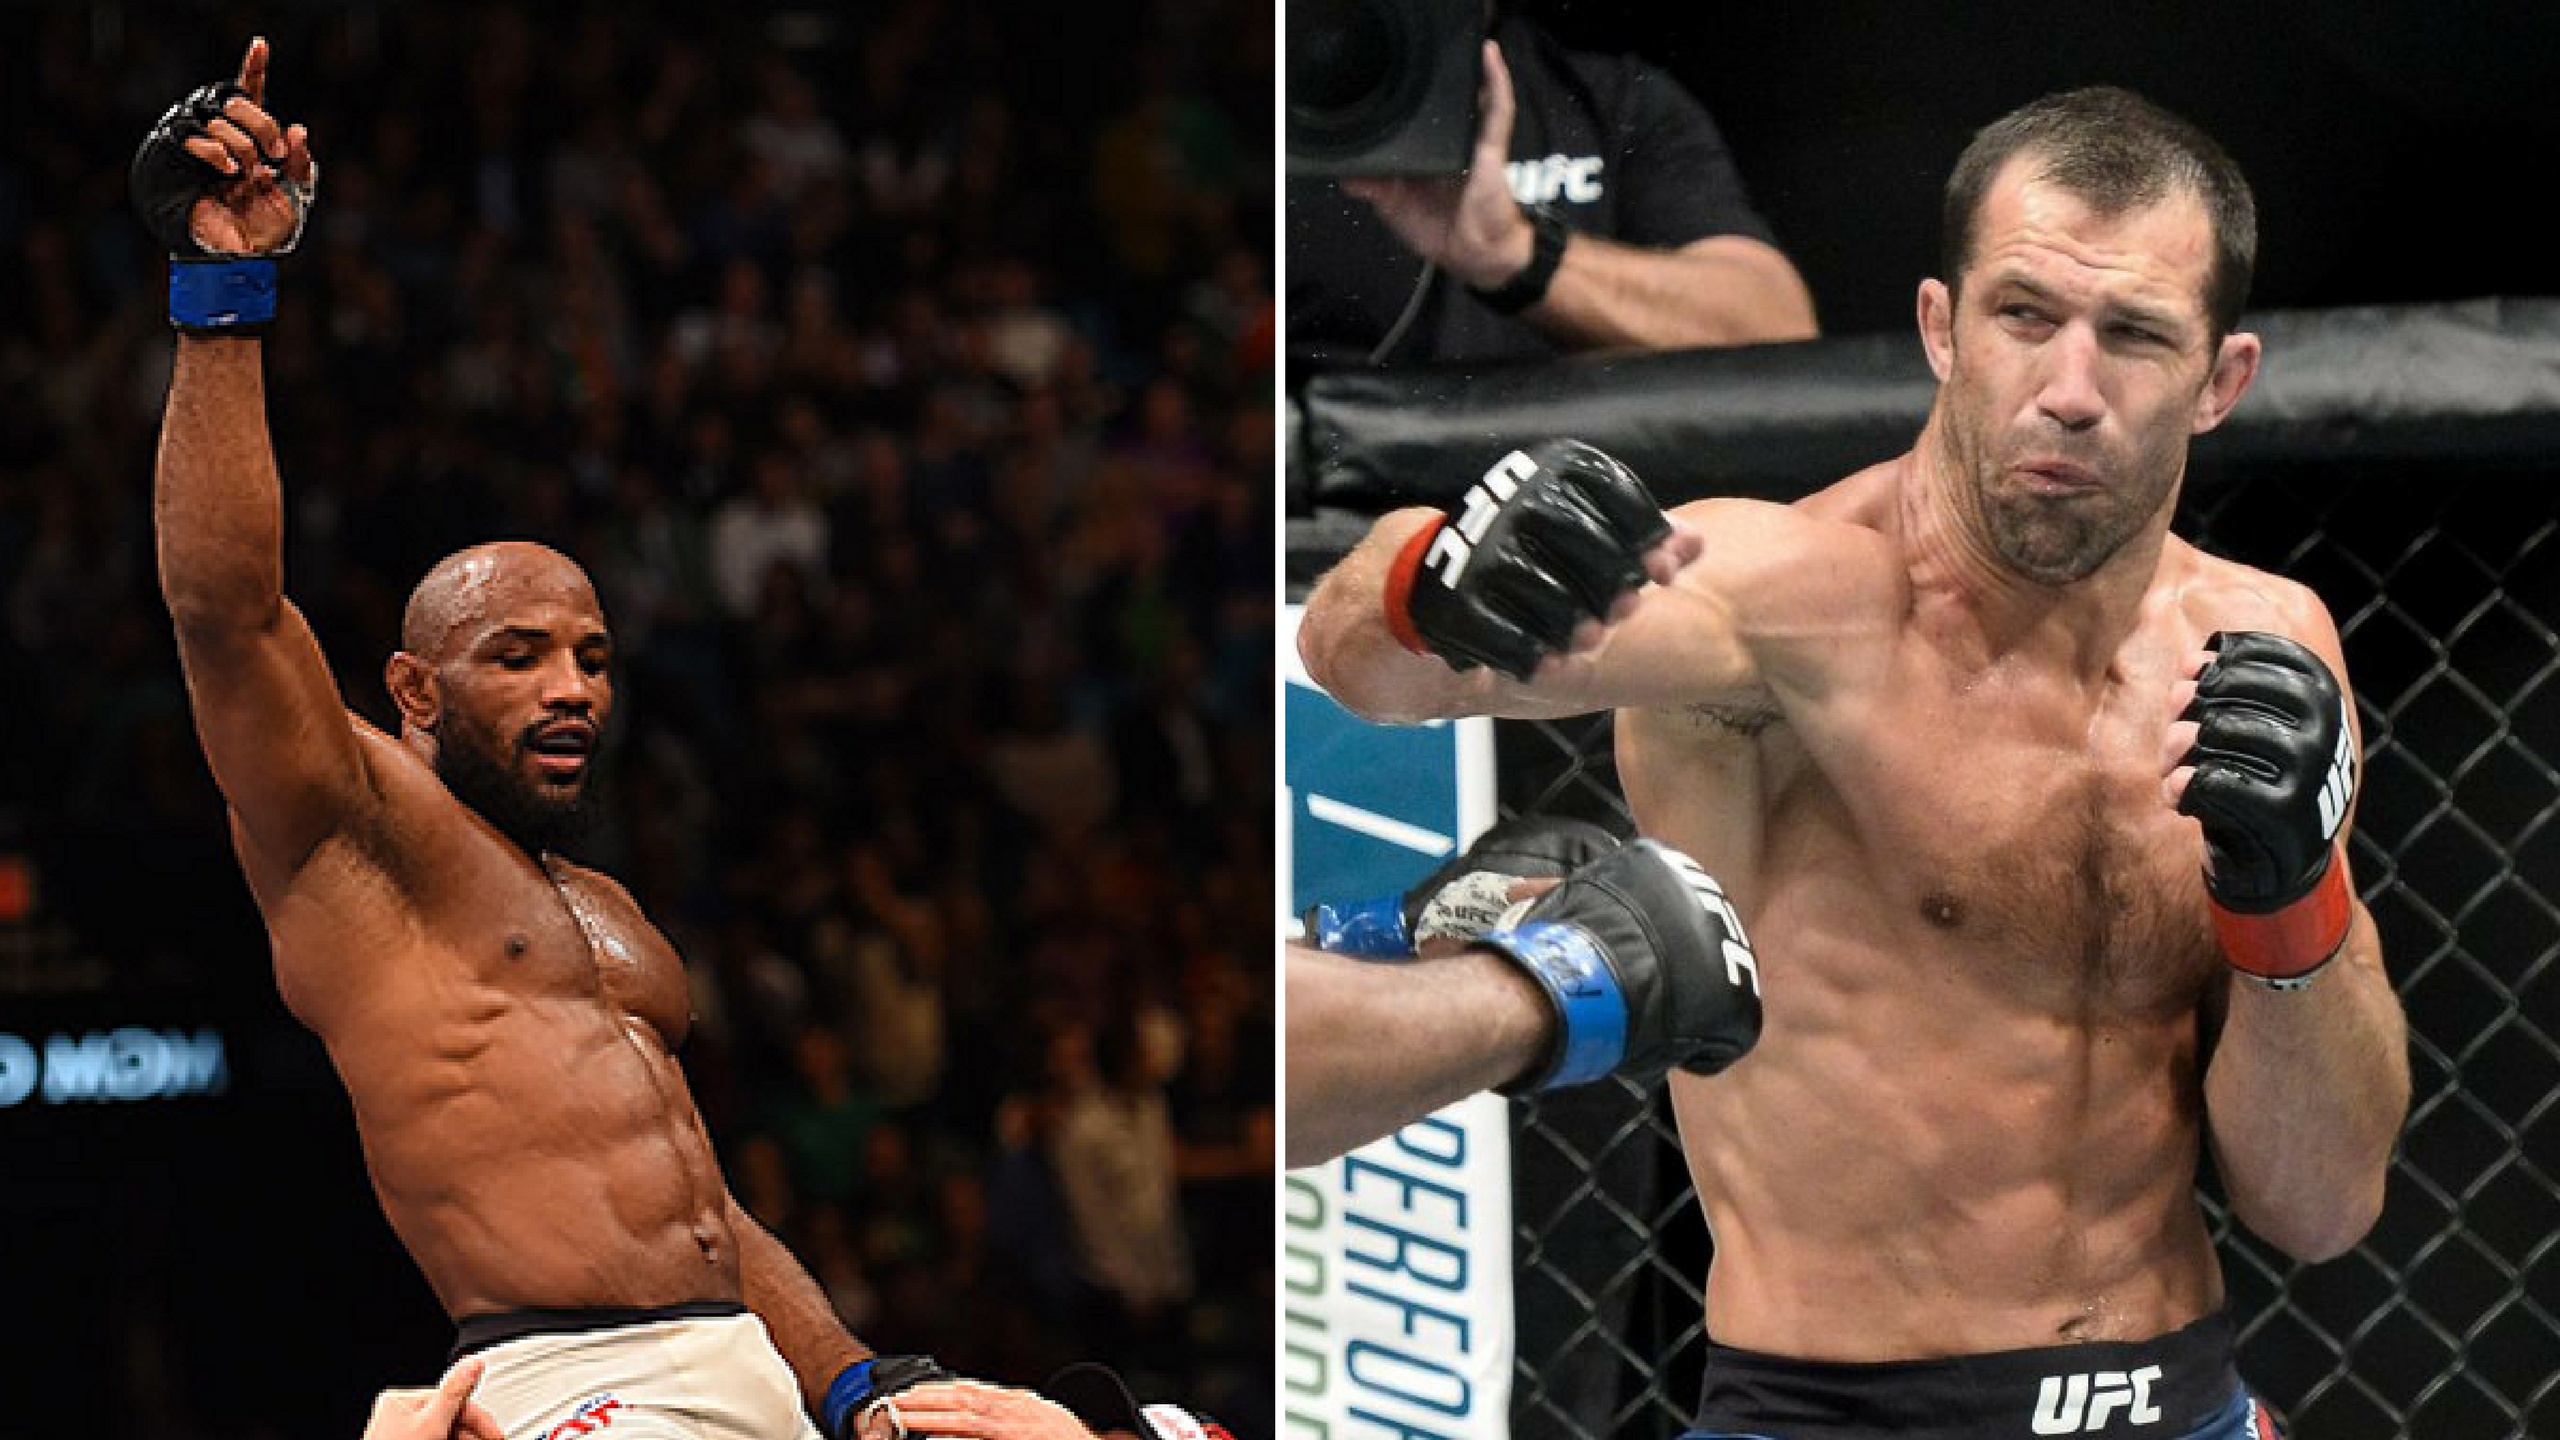 Sad news for the Australians: Robert Whittaker pulls out of UFC 221 citing injury; Rockhold will fight Yoel Romero for Interim title. -